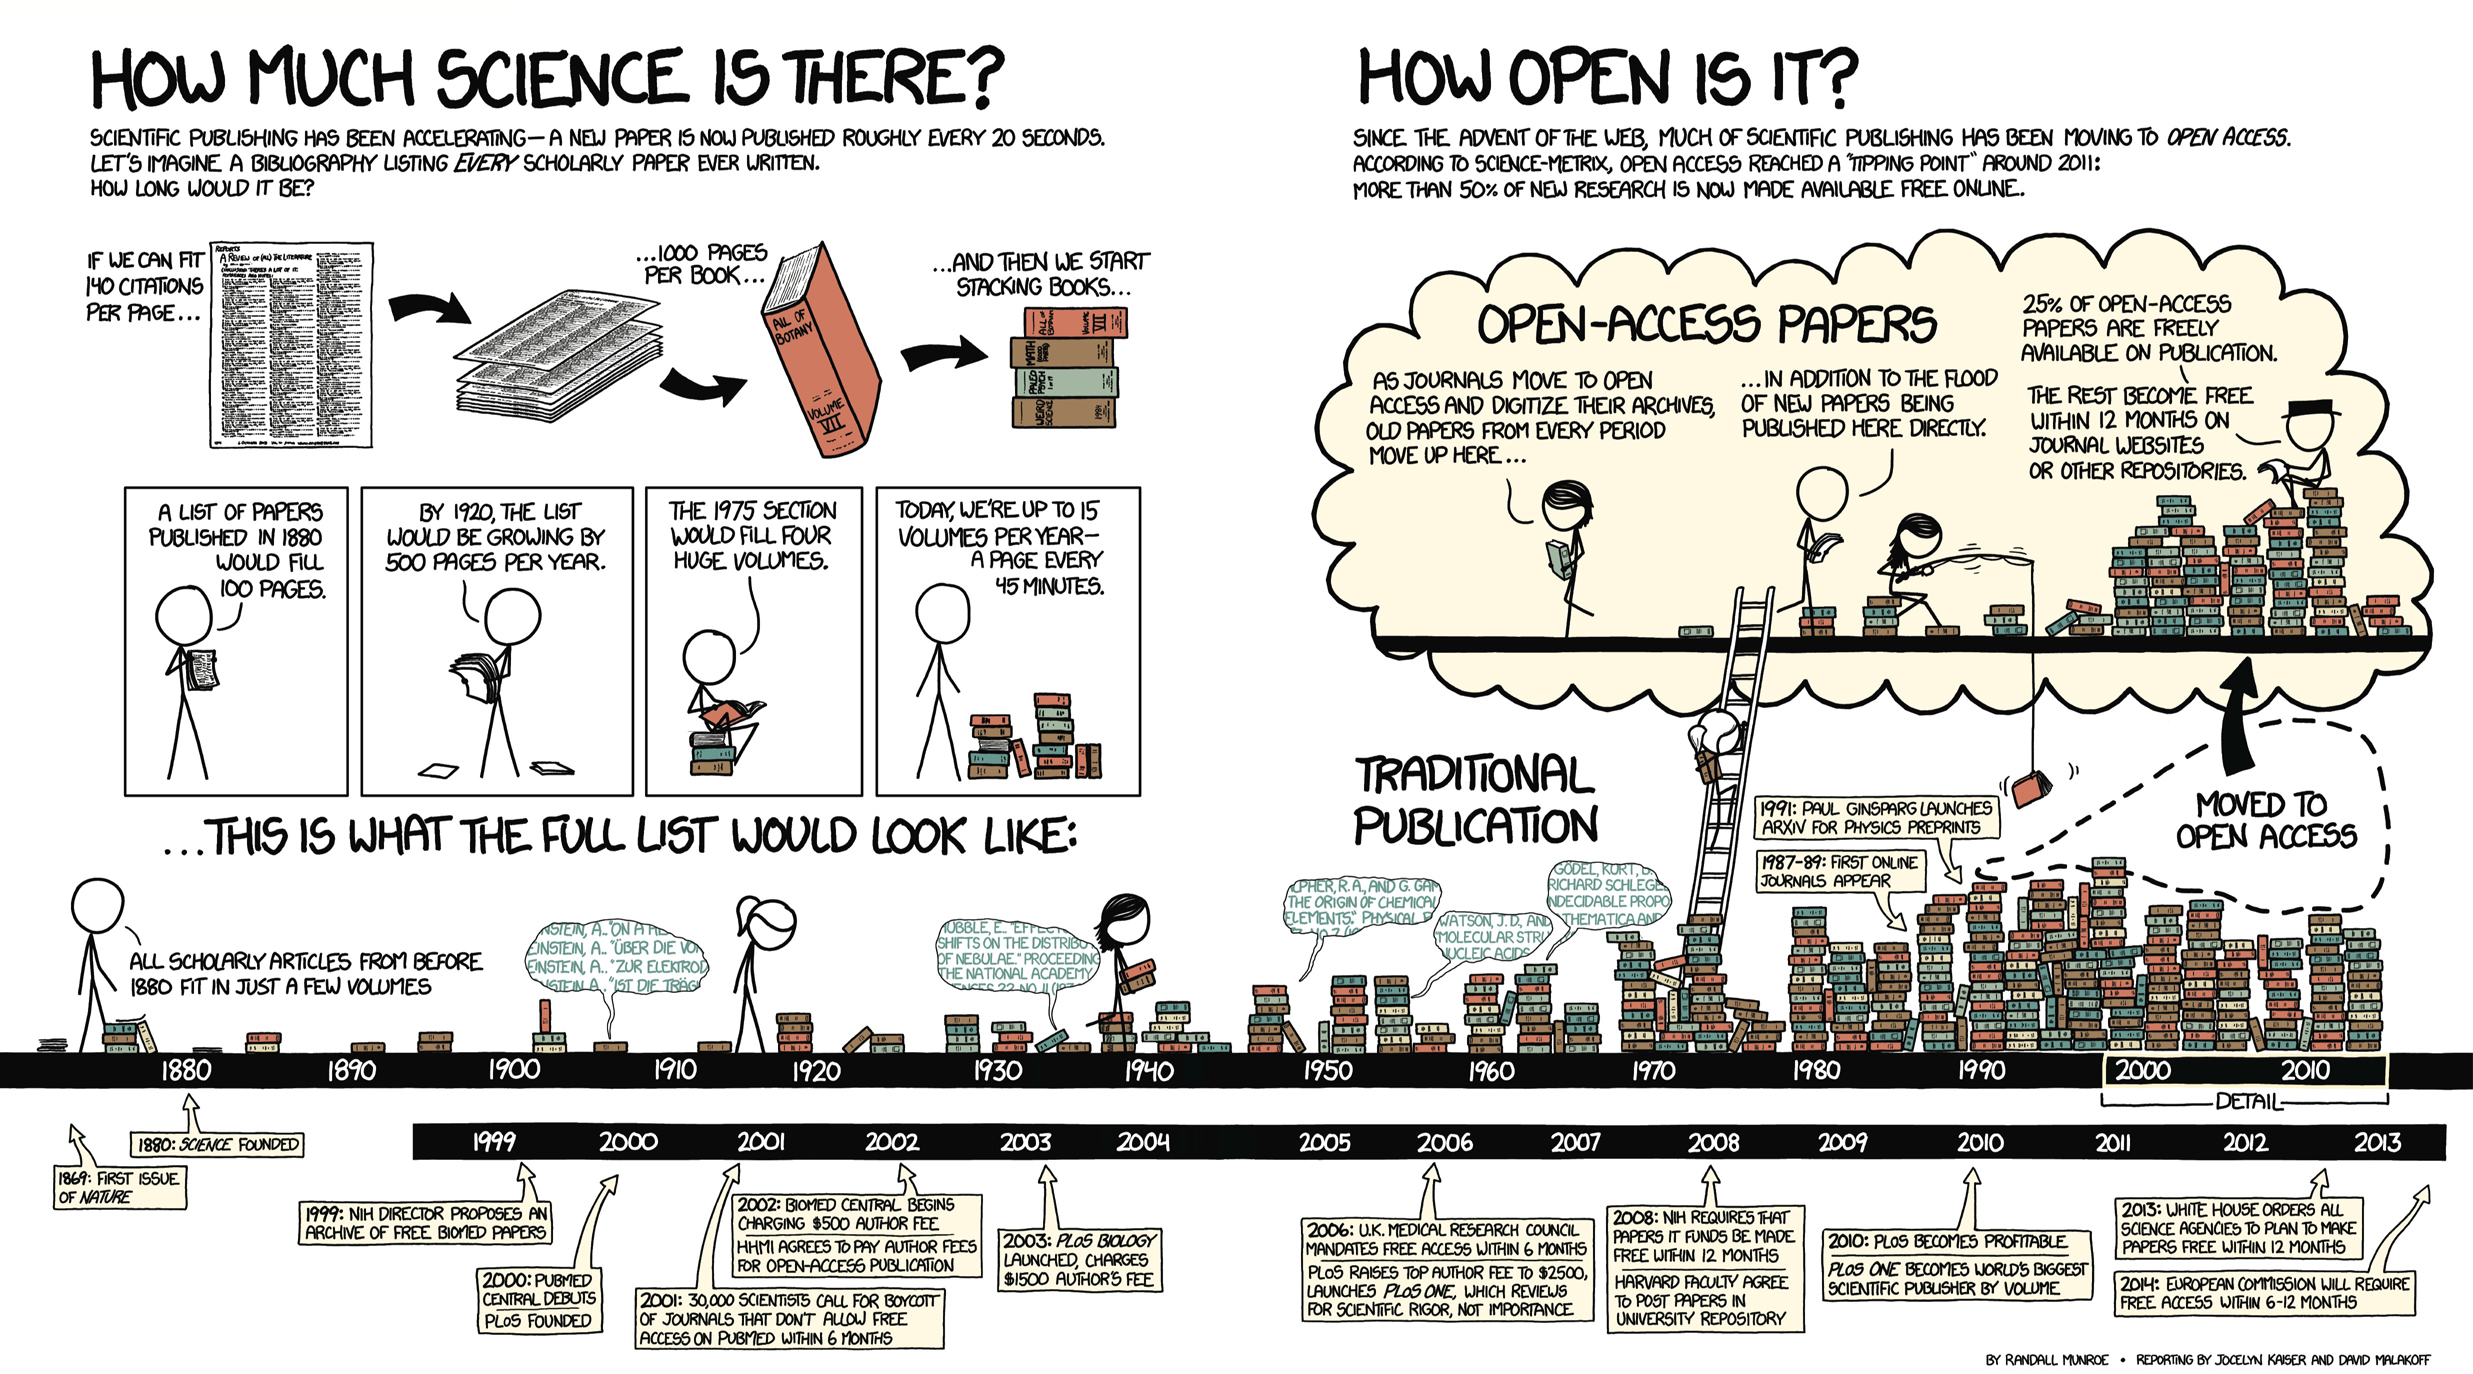 The accelerating pace of scientific publishing and the rise of open access, as depicted by xkcd.com cartoonist Randall Munroe.